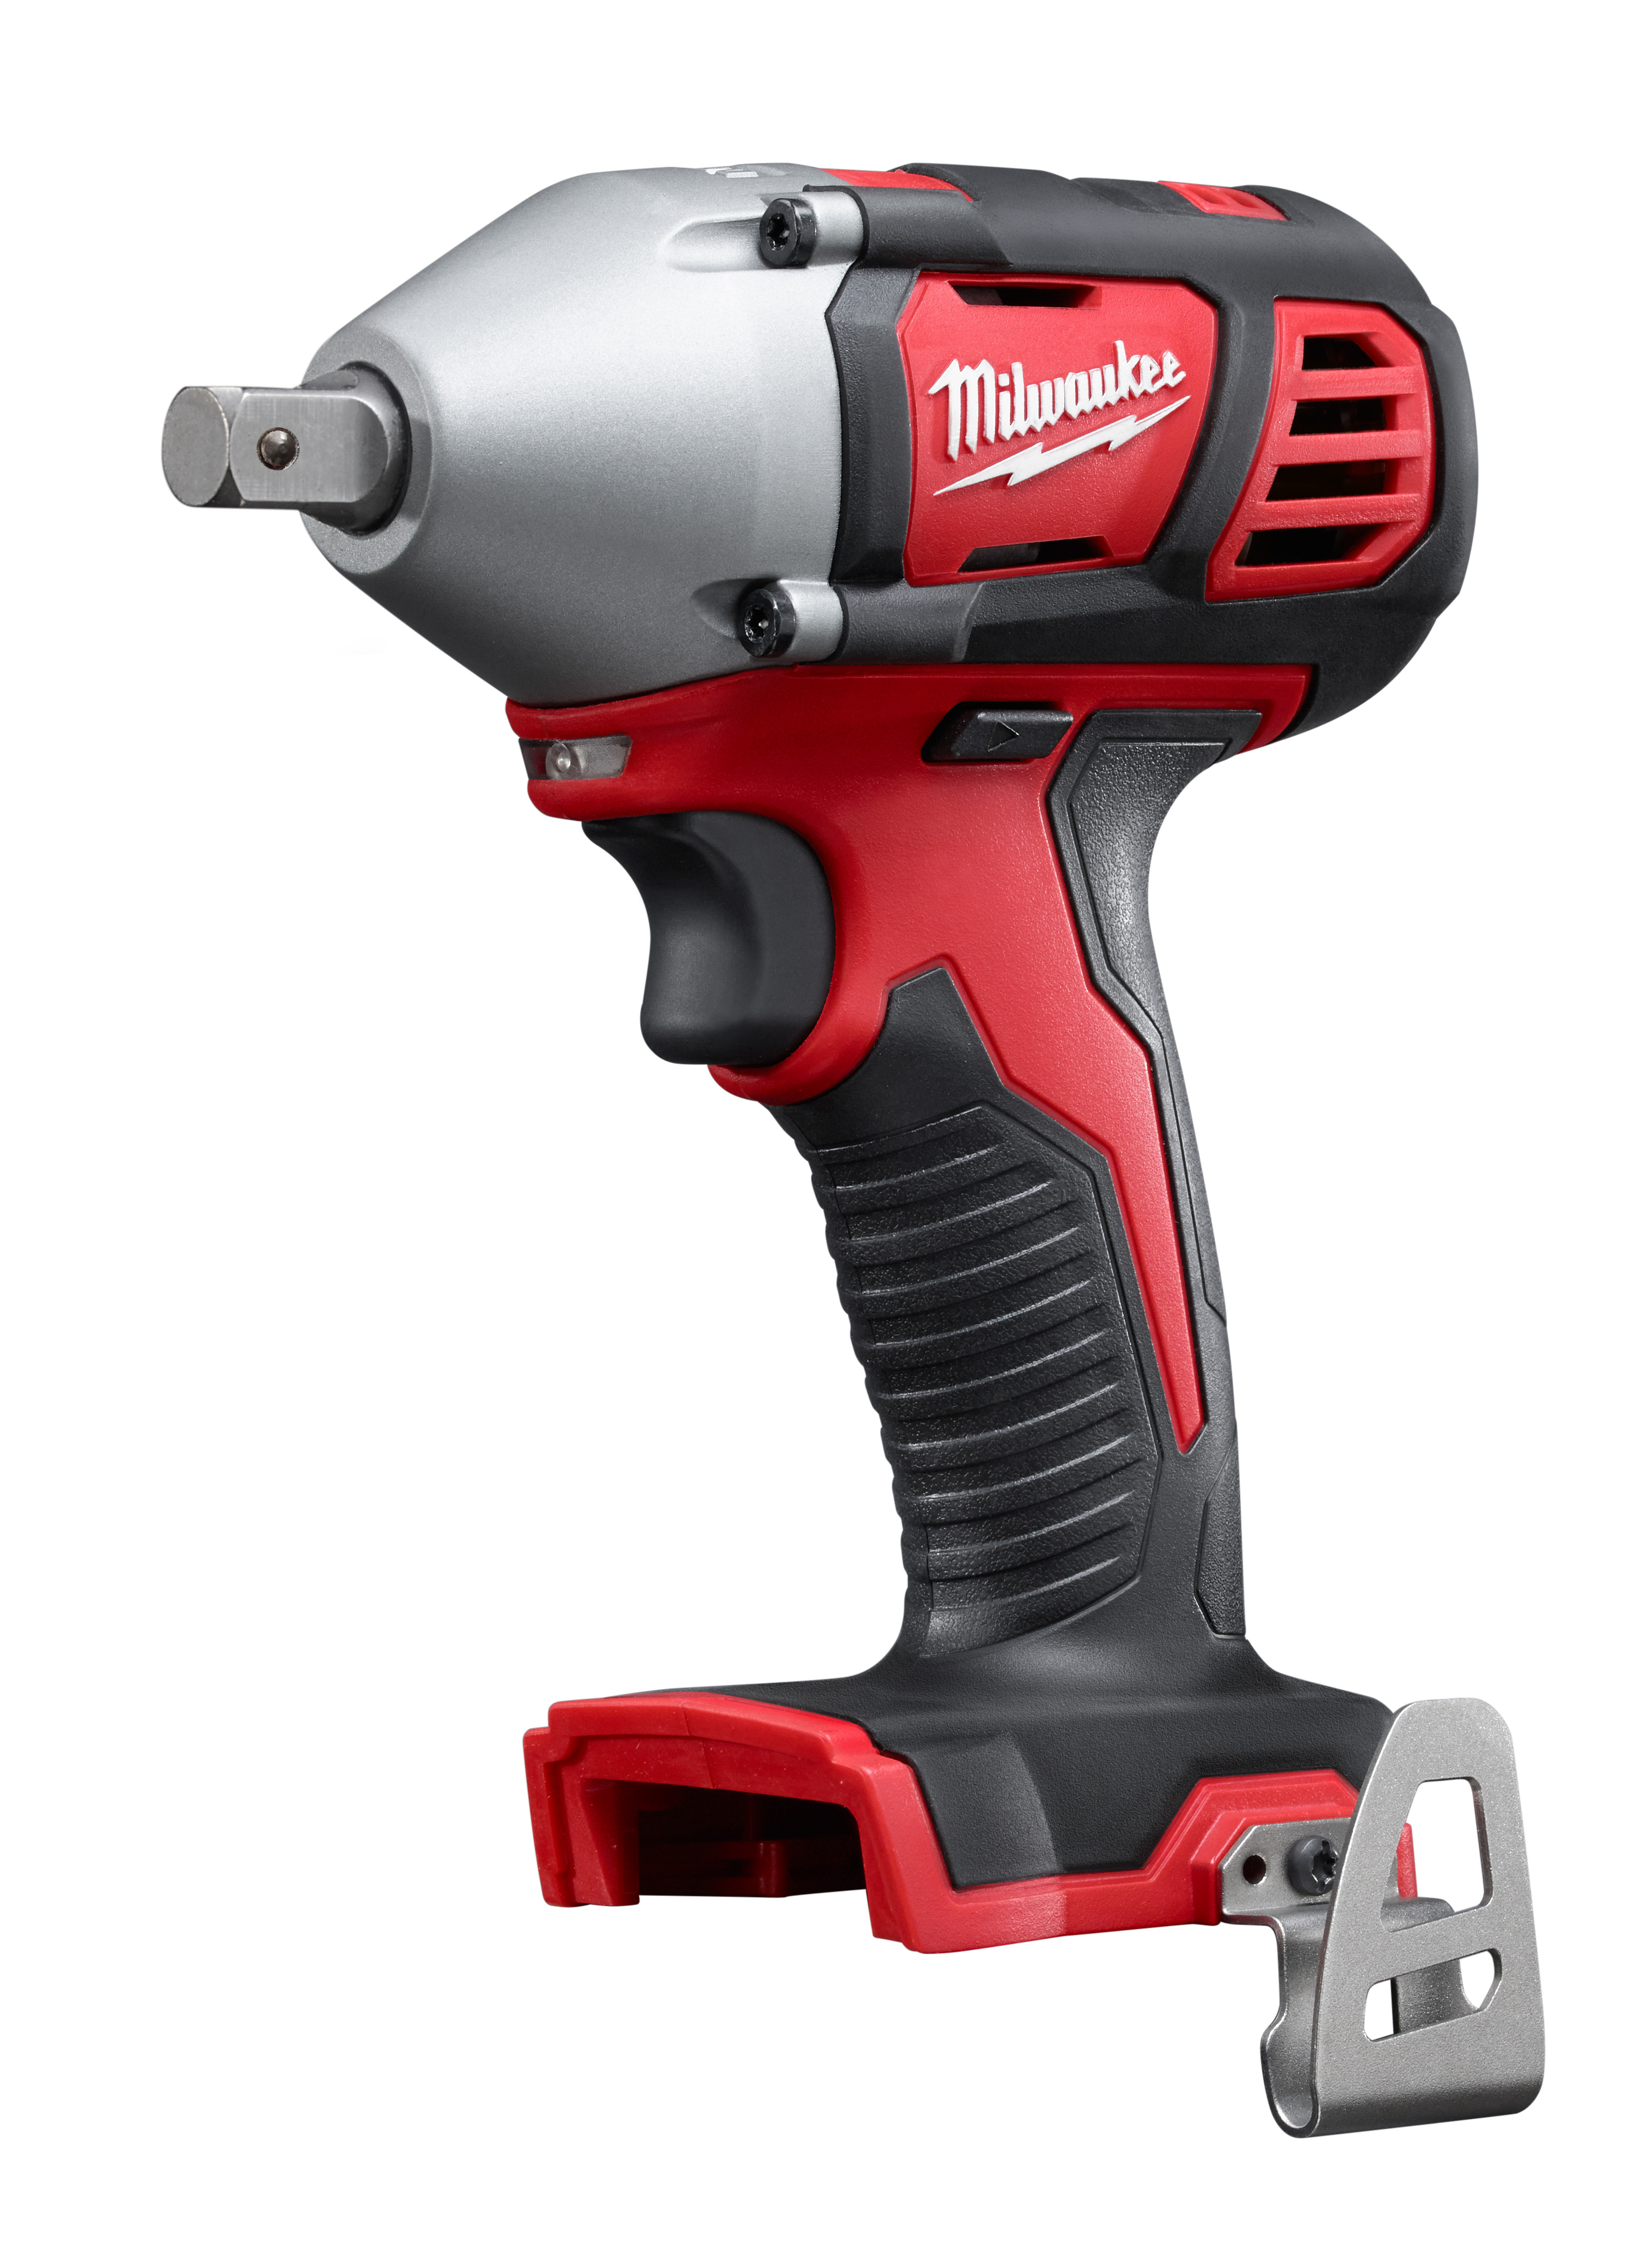 Milwaukee® M18™ 2659-20 Compact Cordless Impact Wrench With Pin Detent, 1/2 in Straight Drive, 3350 bpm, 183 ft-lb Torque, 18 VDC, 6 in OAL